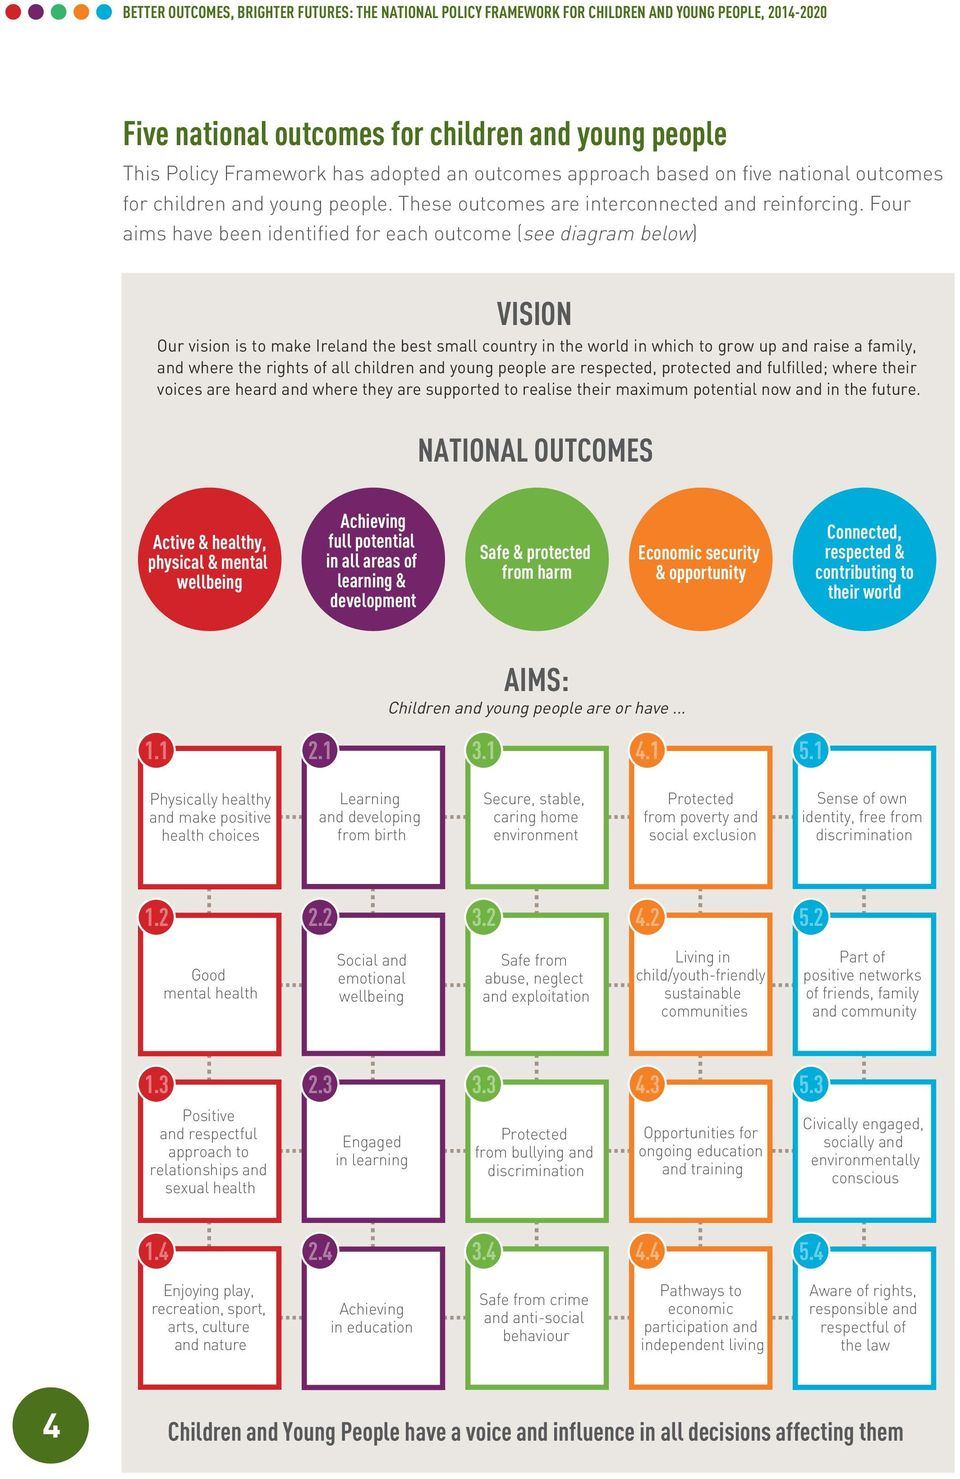 Four aims have been identified for each outcome (see diagram below) VISION Our vision is to make Ireland the best small country in the world in which to grow up and raise a family, and where the